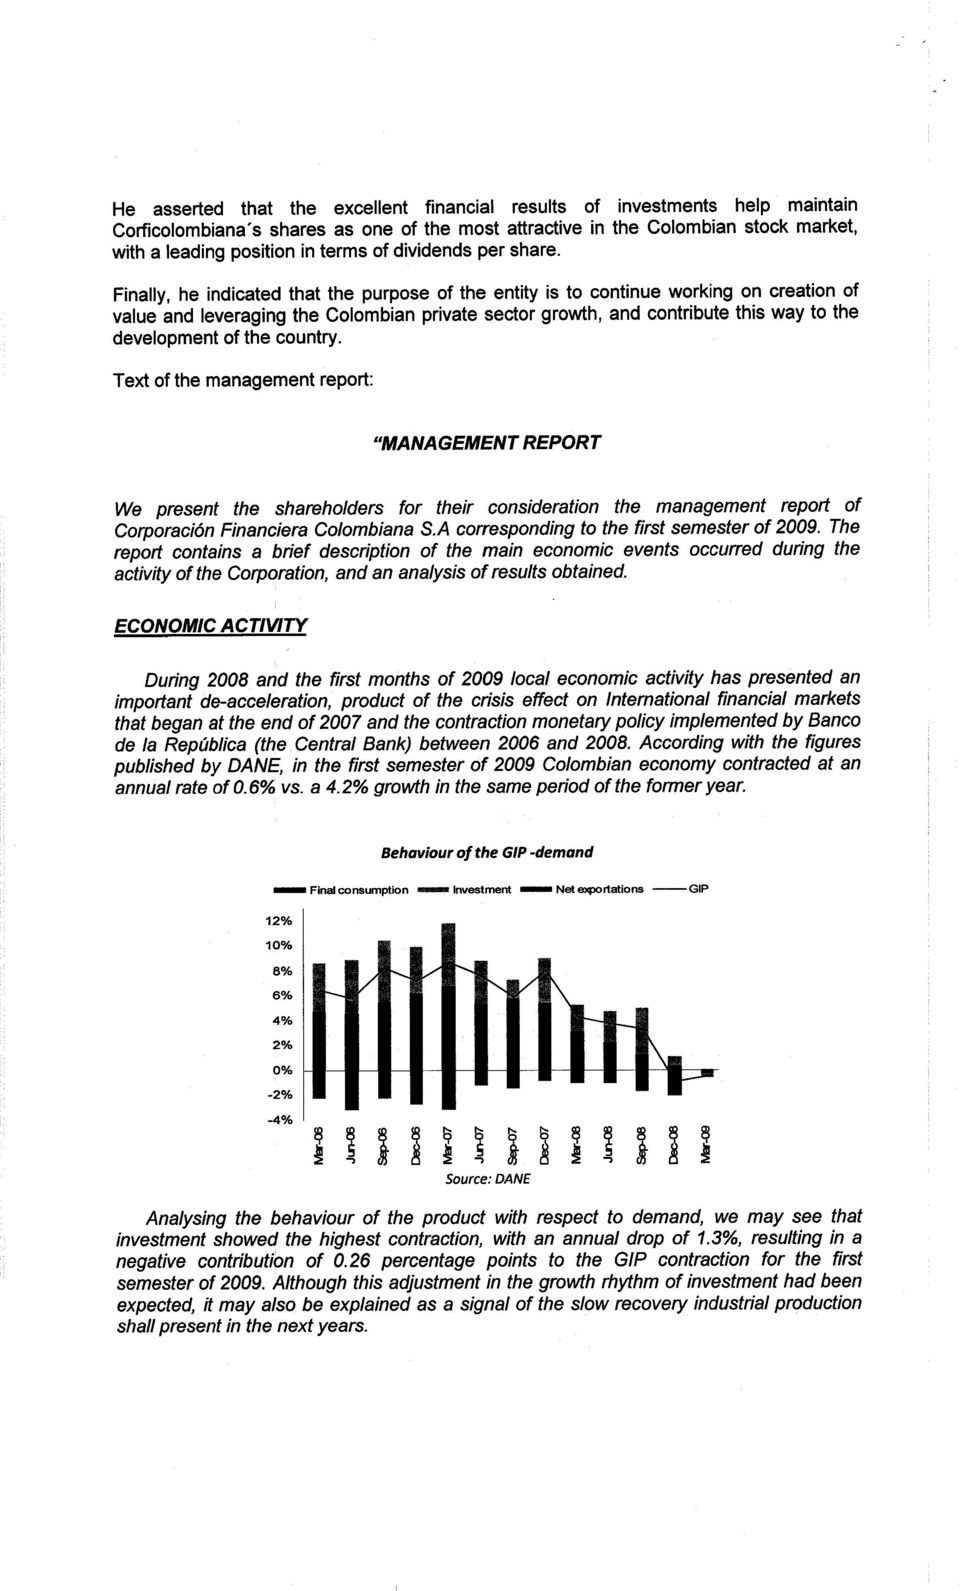 development of the country Text of the management report MANAGEMENT REPORT We present the shareholders for their consideration the management report of CorporaciOn Financiera Colombiana S.